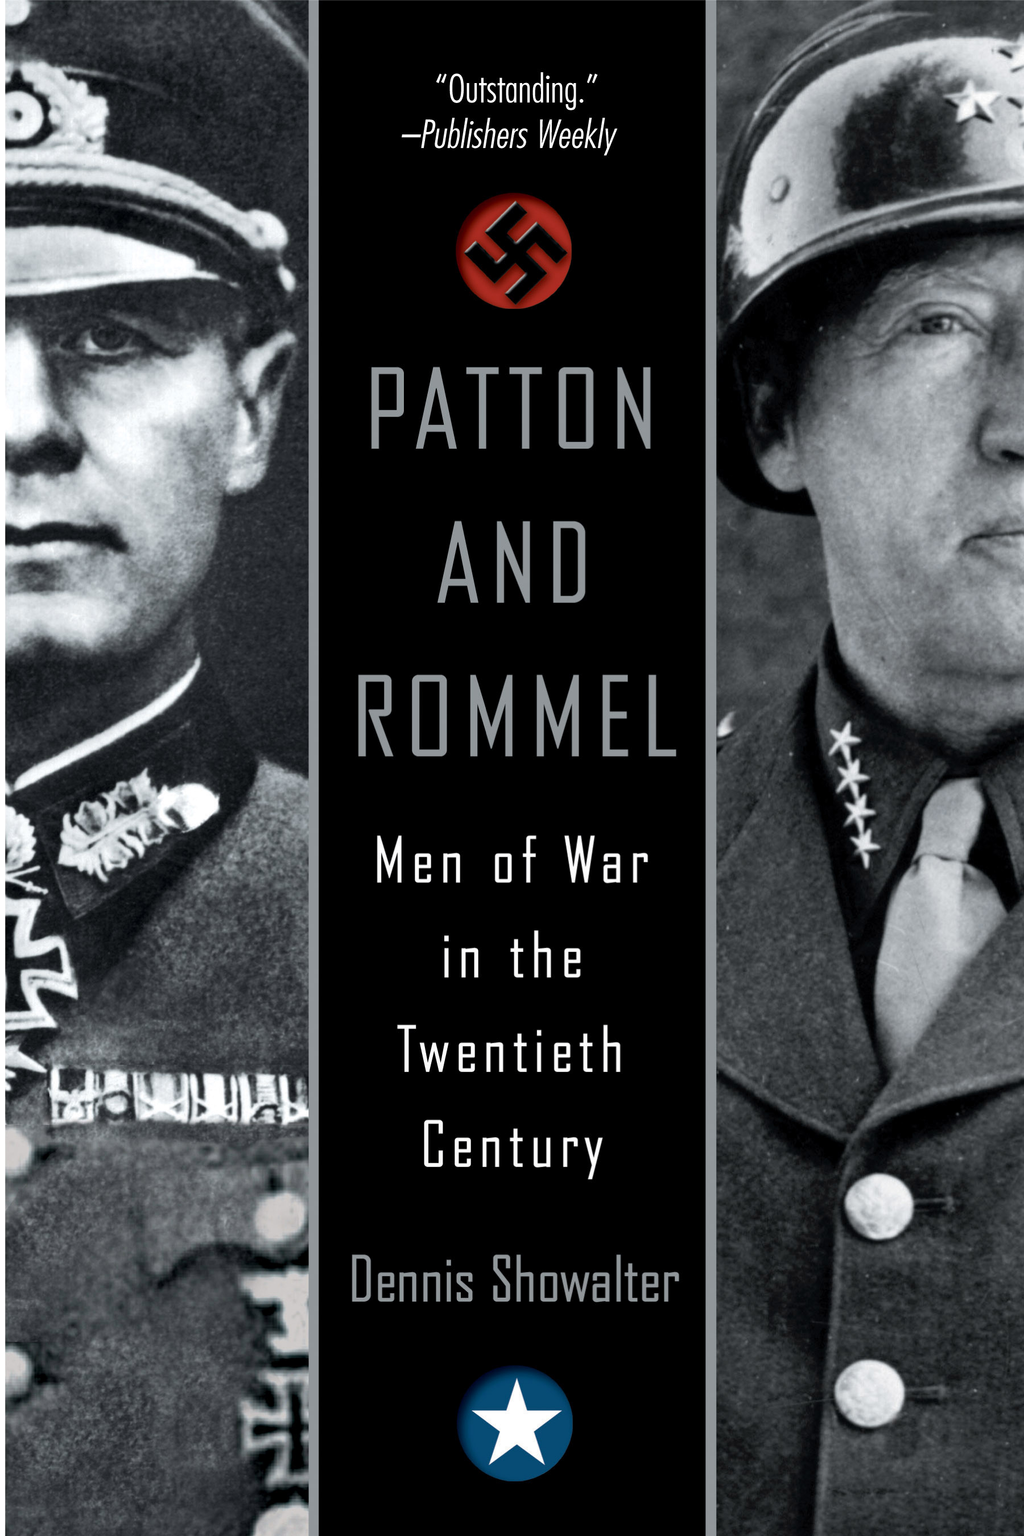 Patton And Rommel By: Dennis Showalter